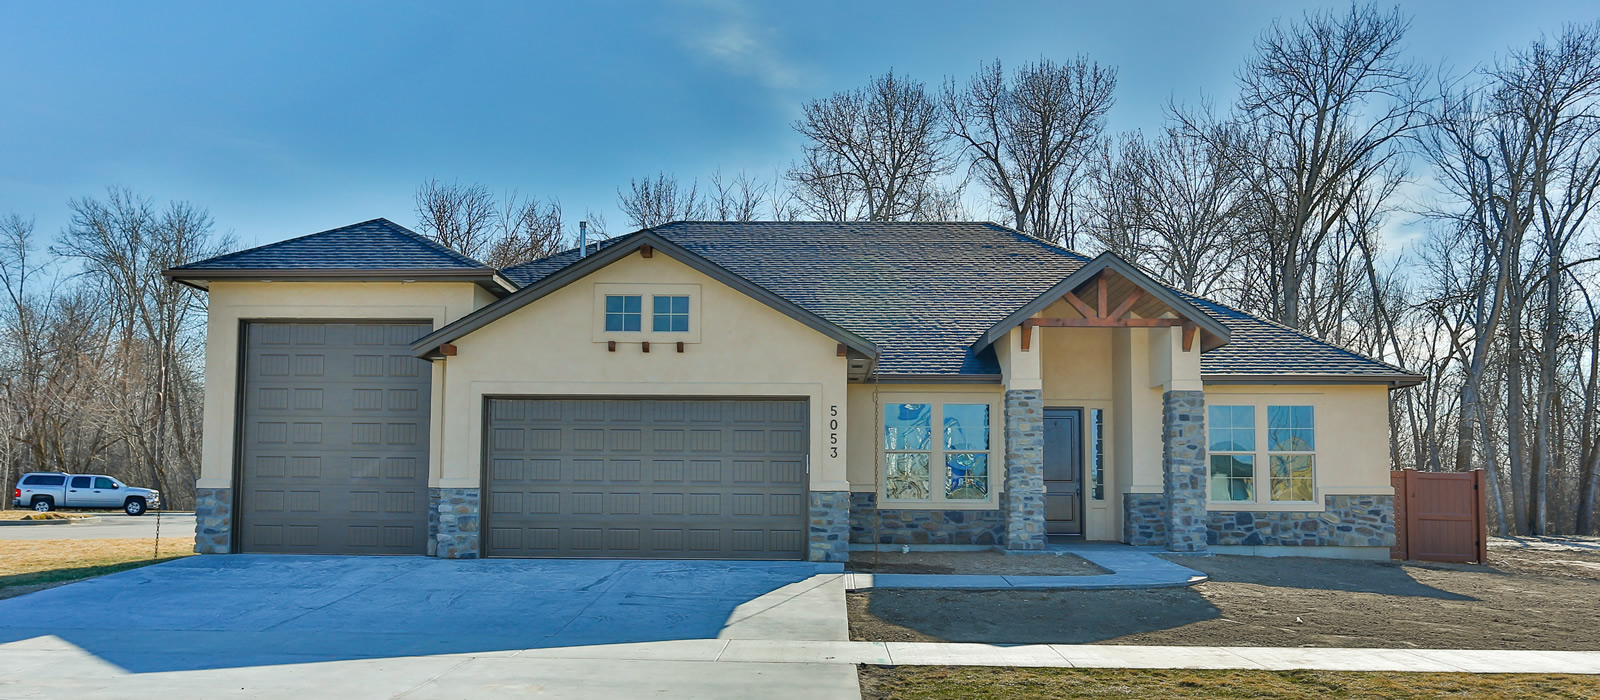 Boise Idaho Parade of Homes 2015